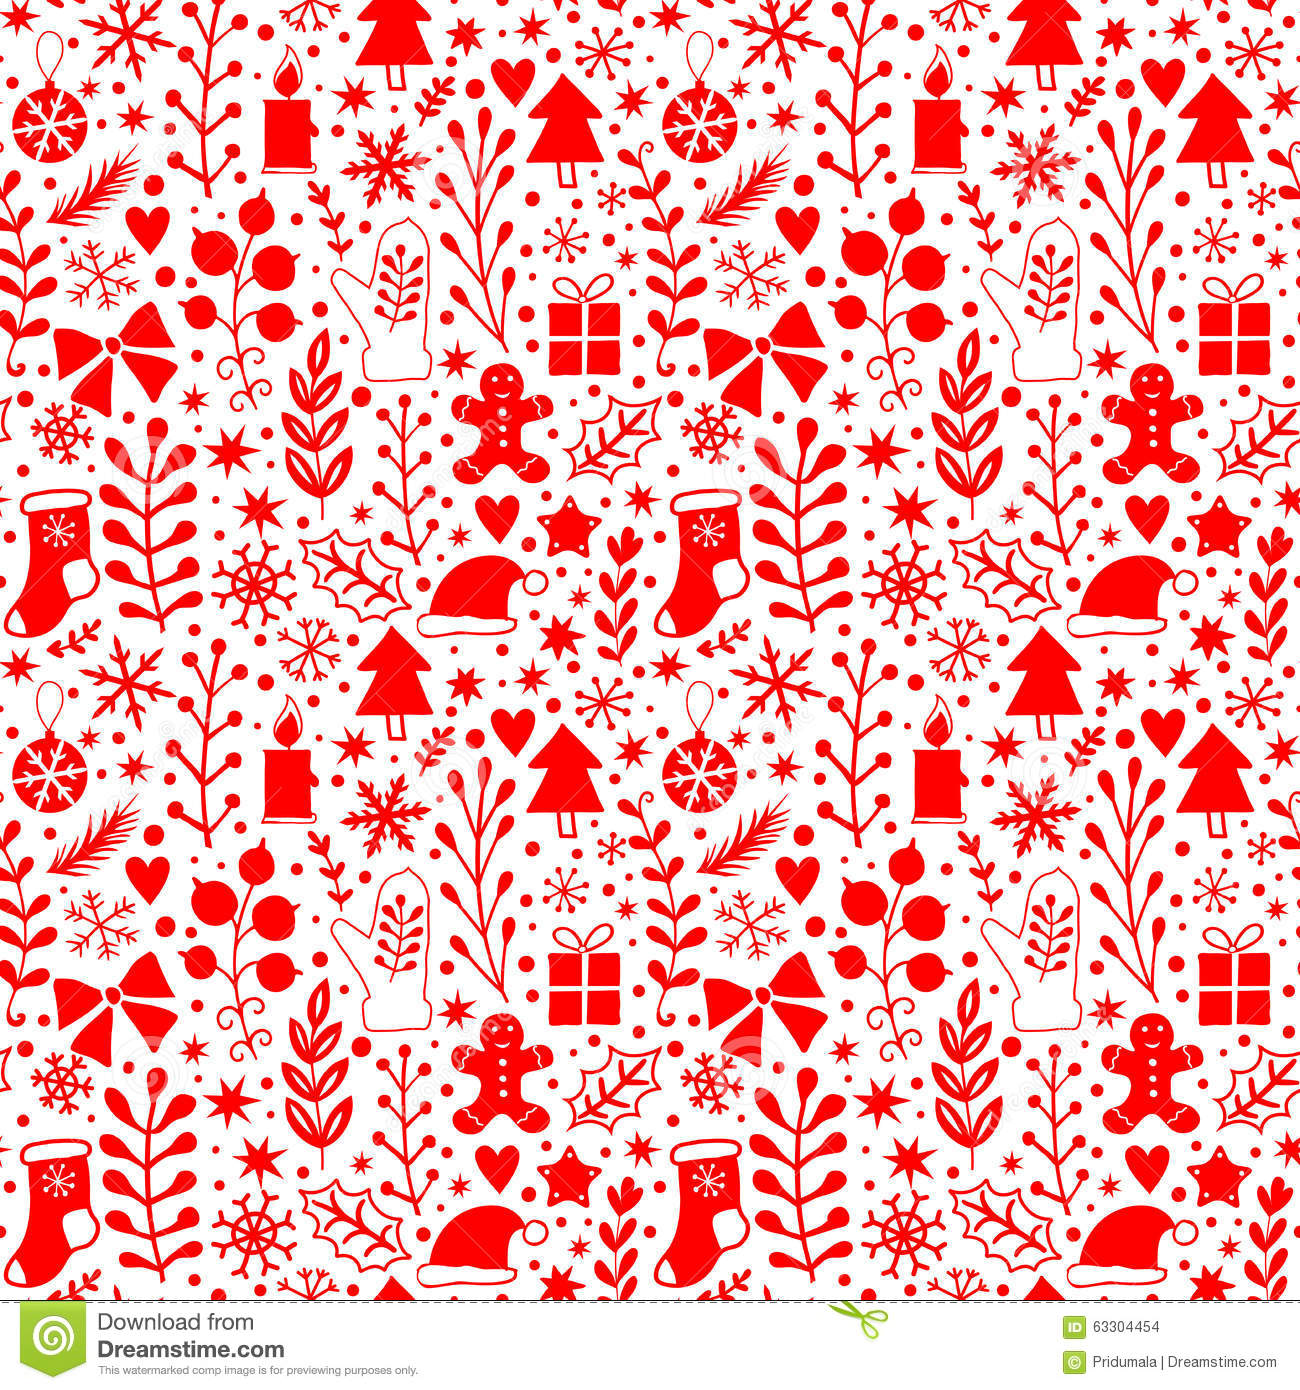 merry christmas seamless pattern happy new year background wrapping paper texture silhouette